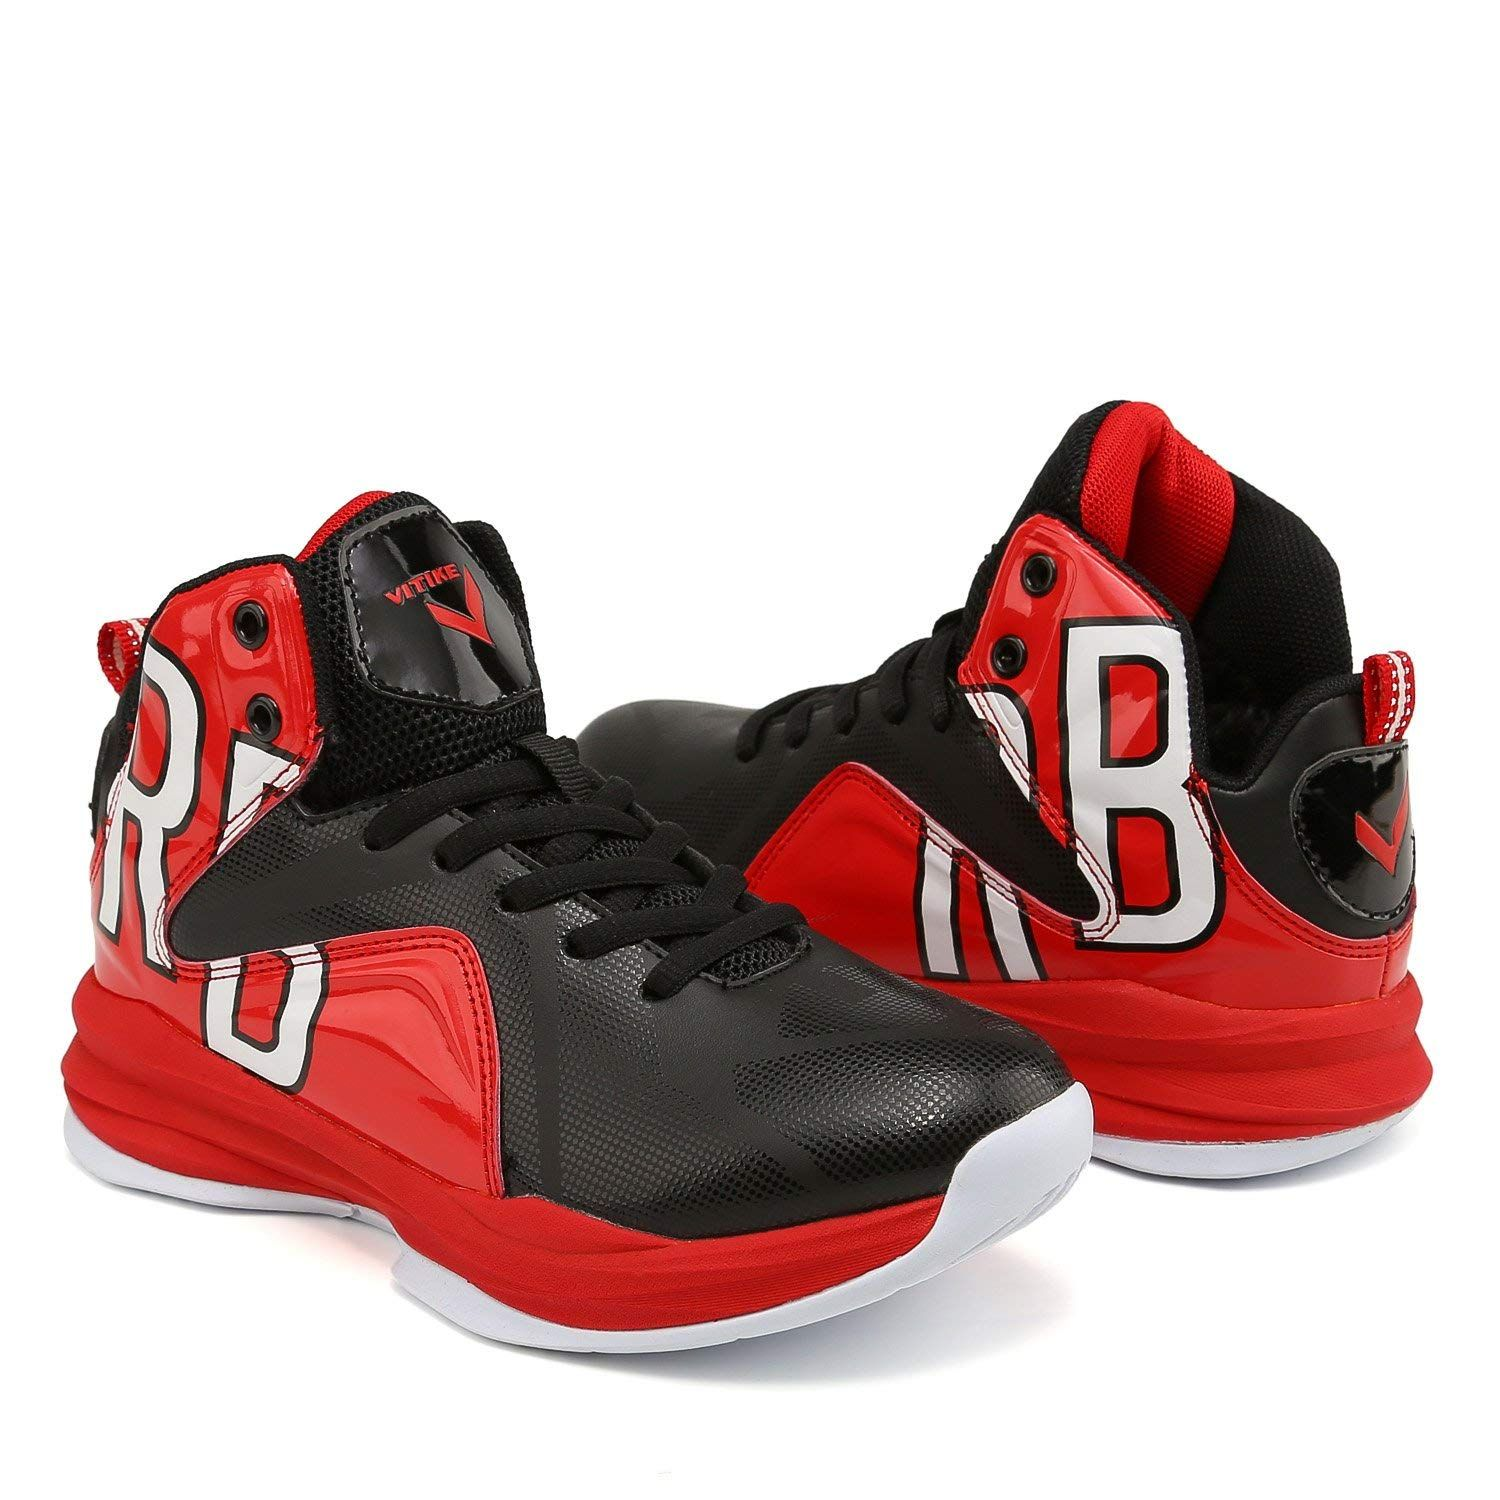 Best Basketball Shoes For Boys Kids Best Basketball Shoes Basketball Shoes Black Basketball Shoes